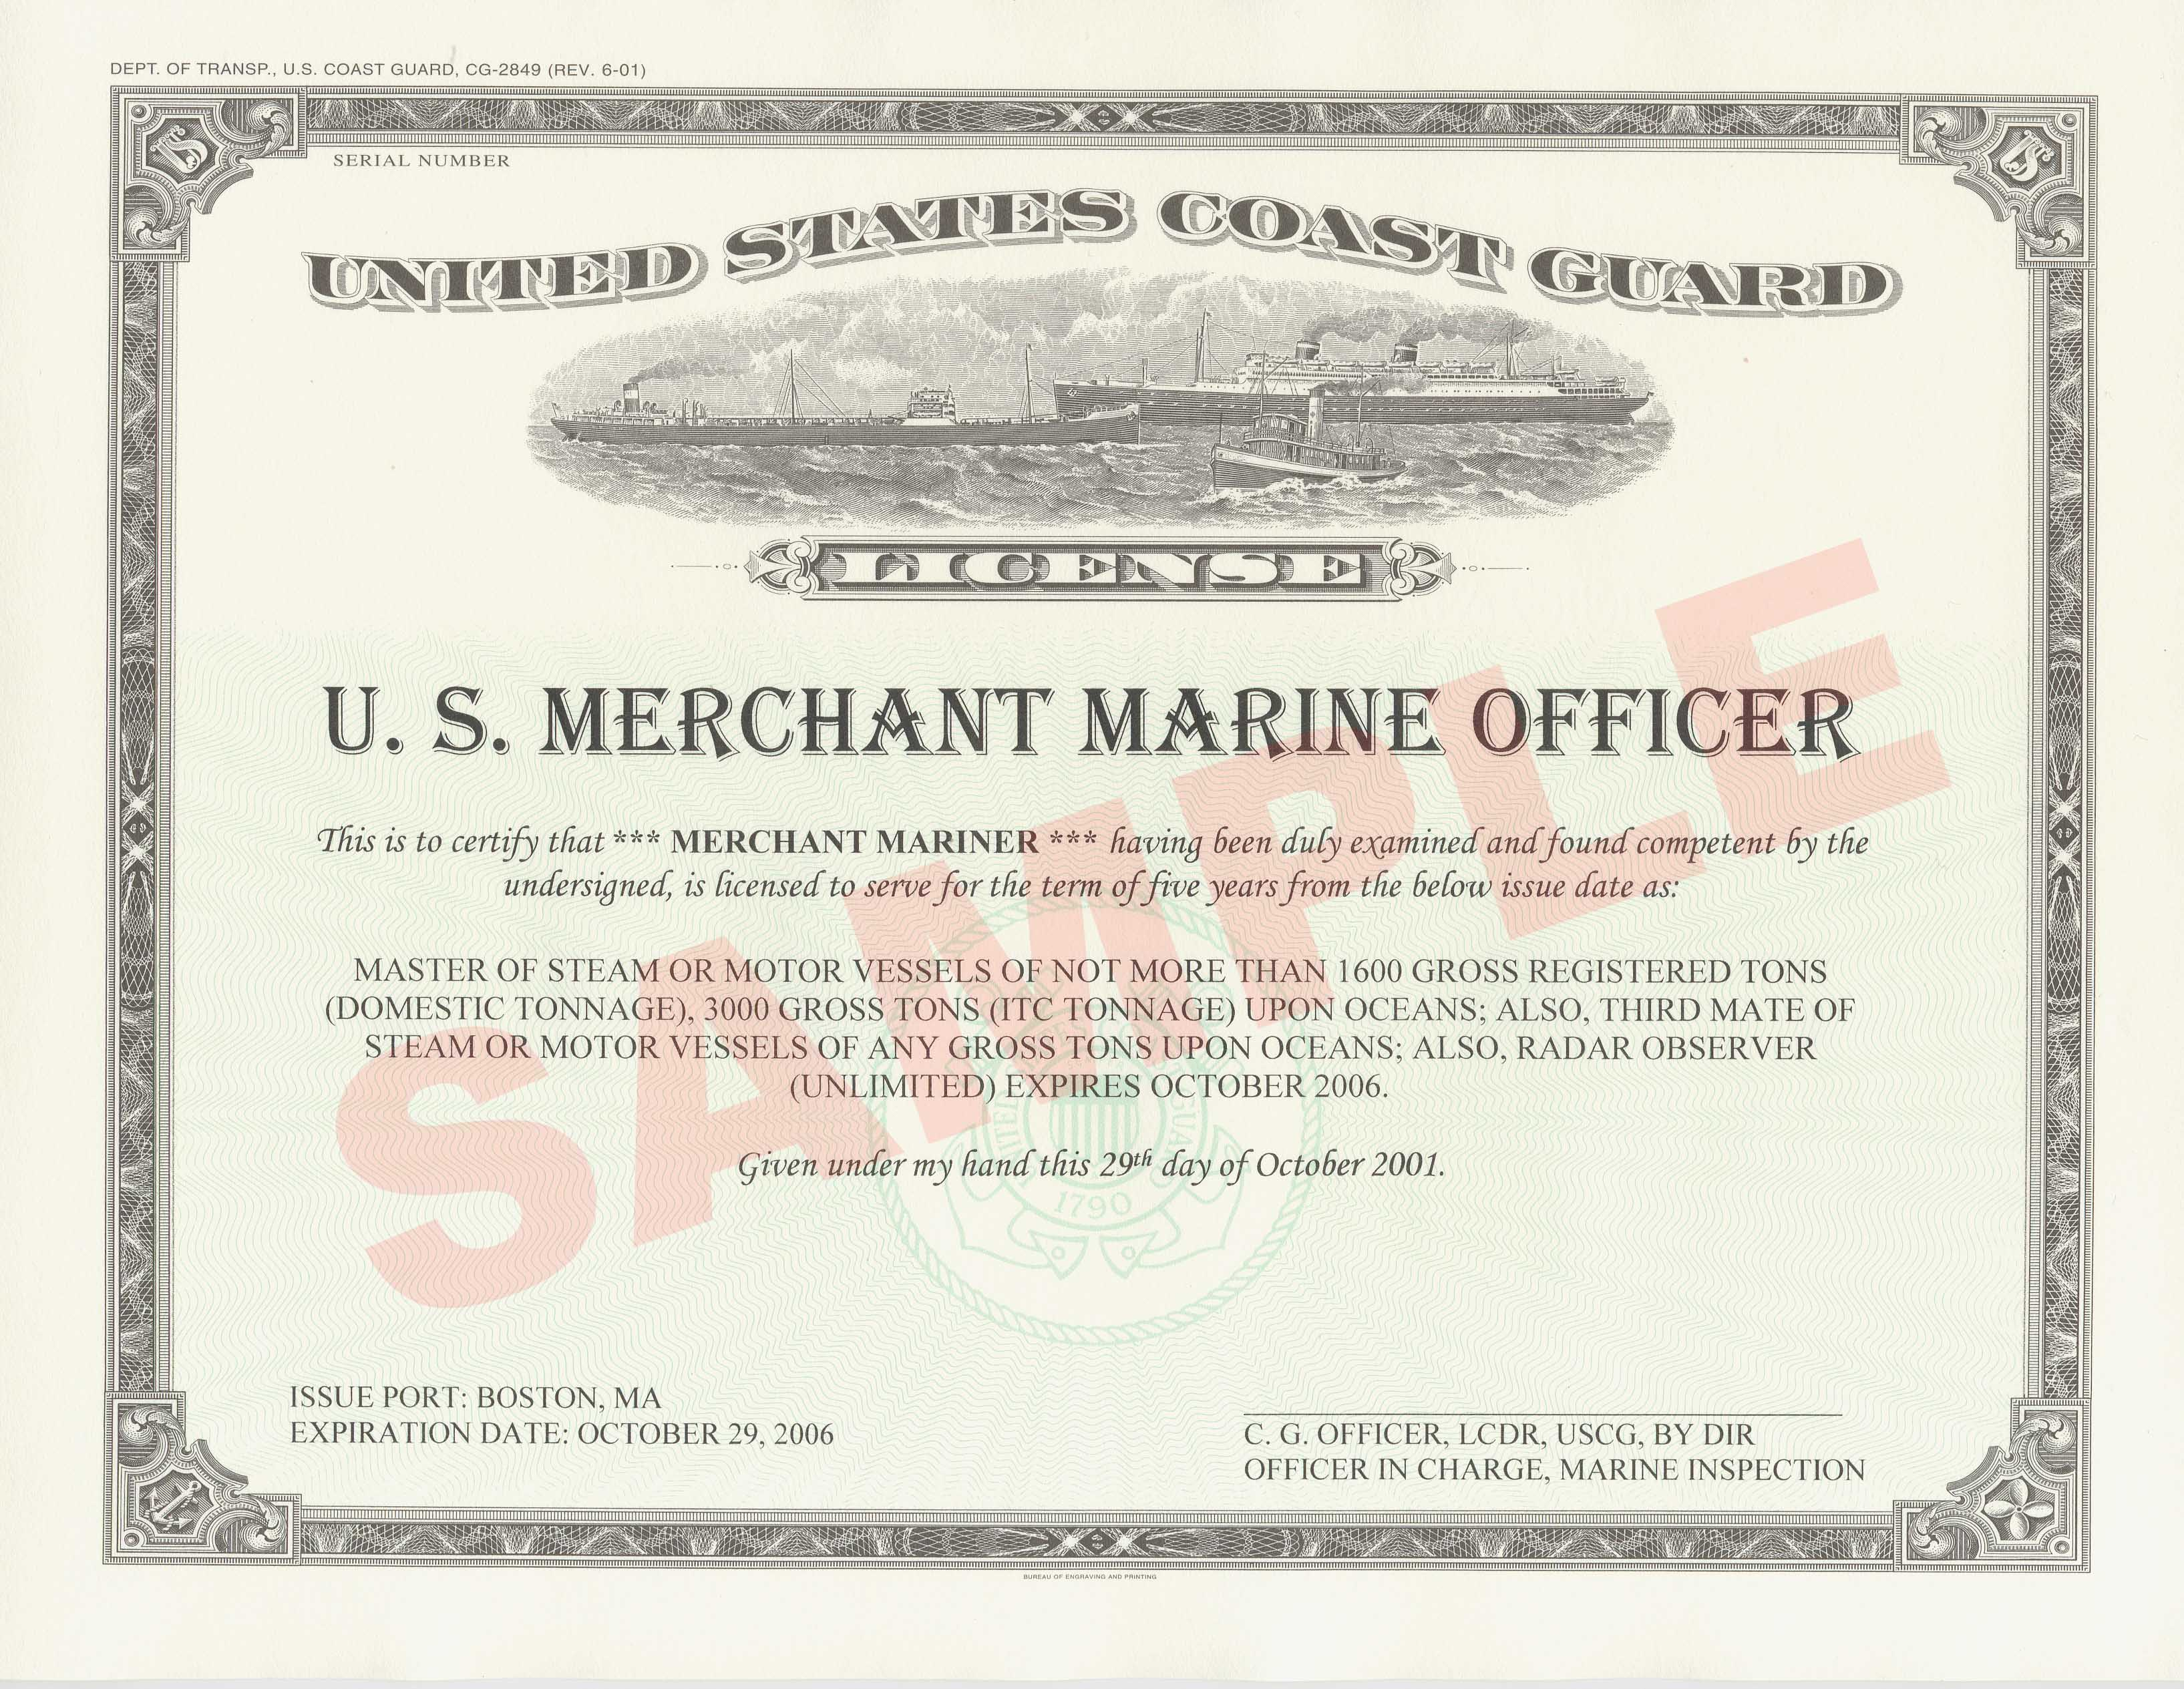 uscg memo template - us cruise ship captain convicted of using a stolen